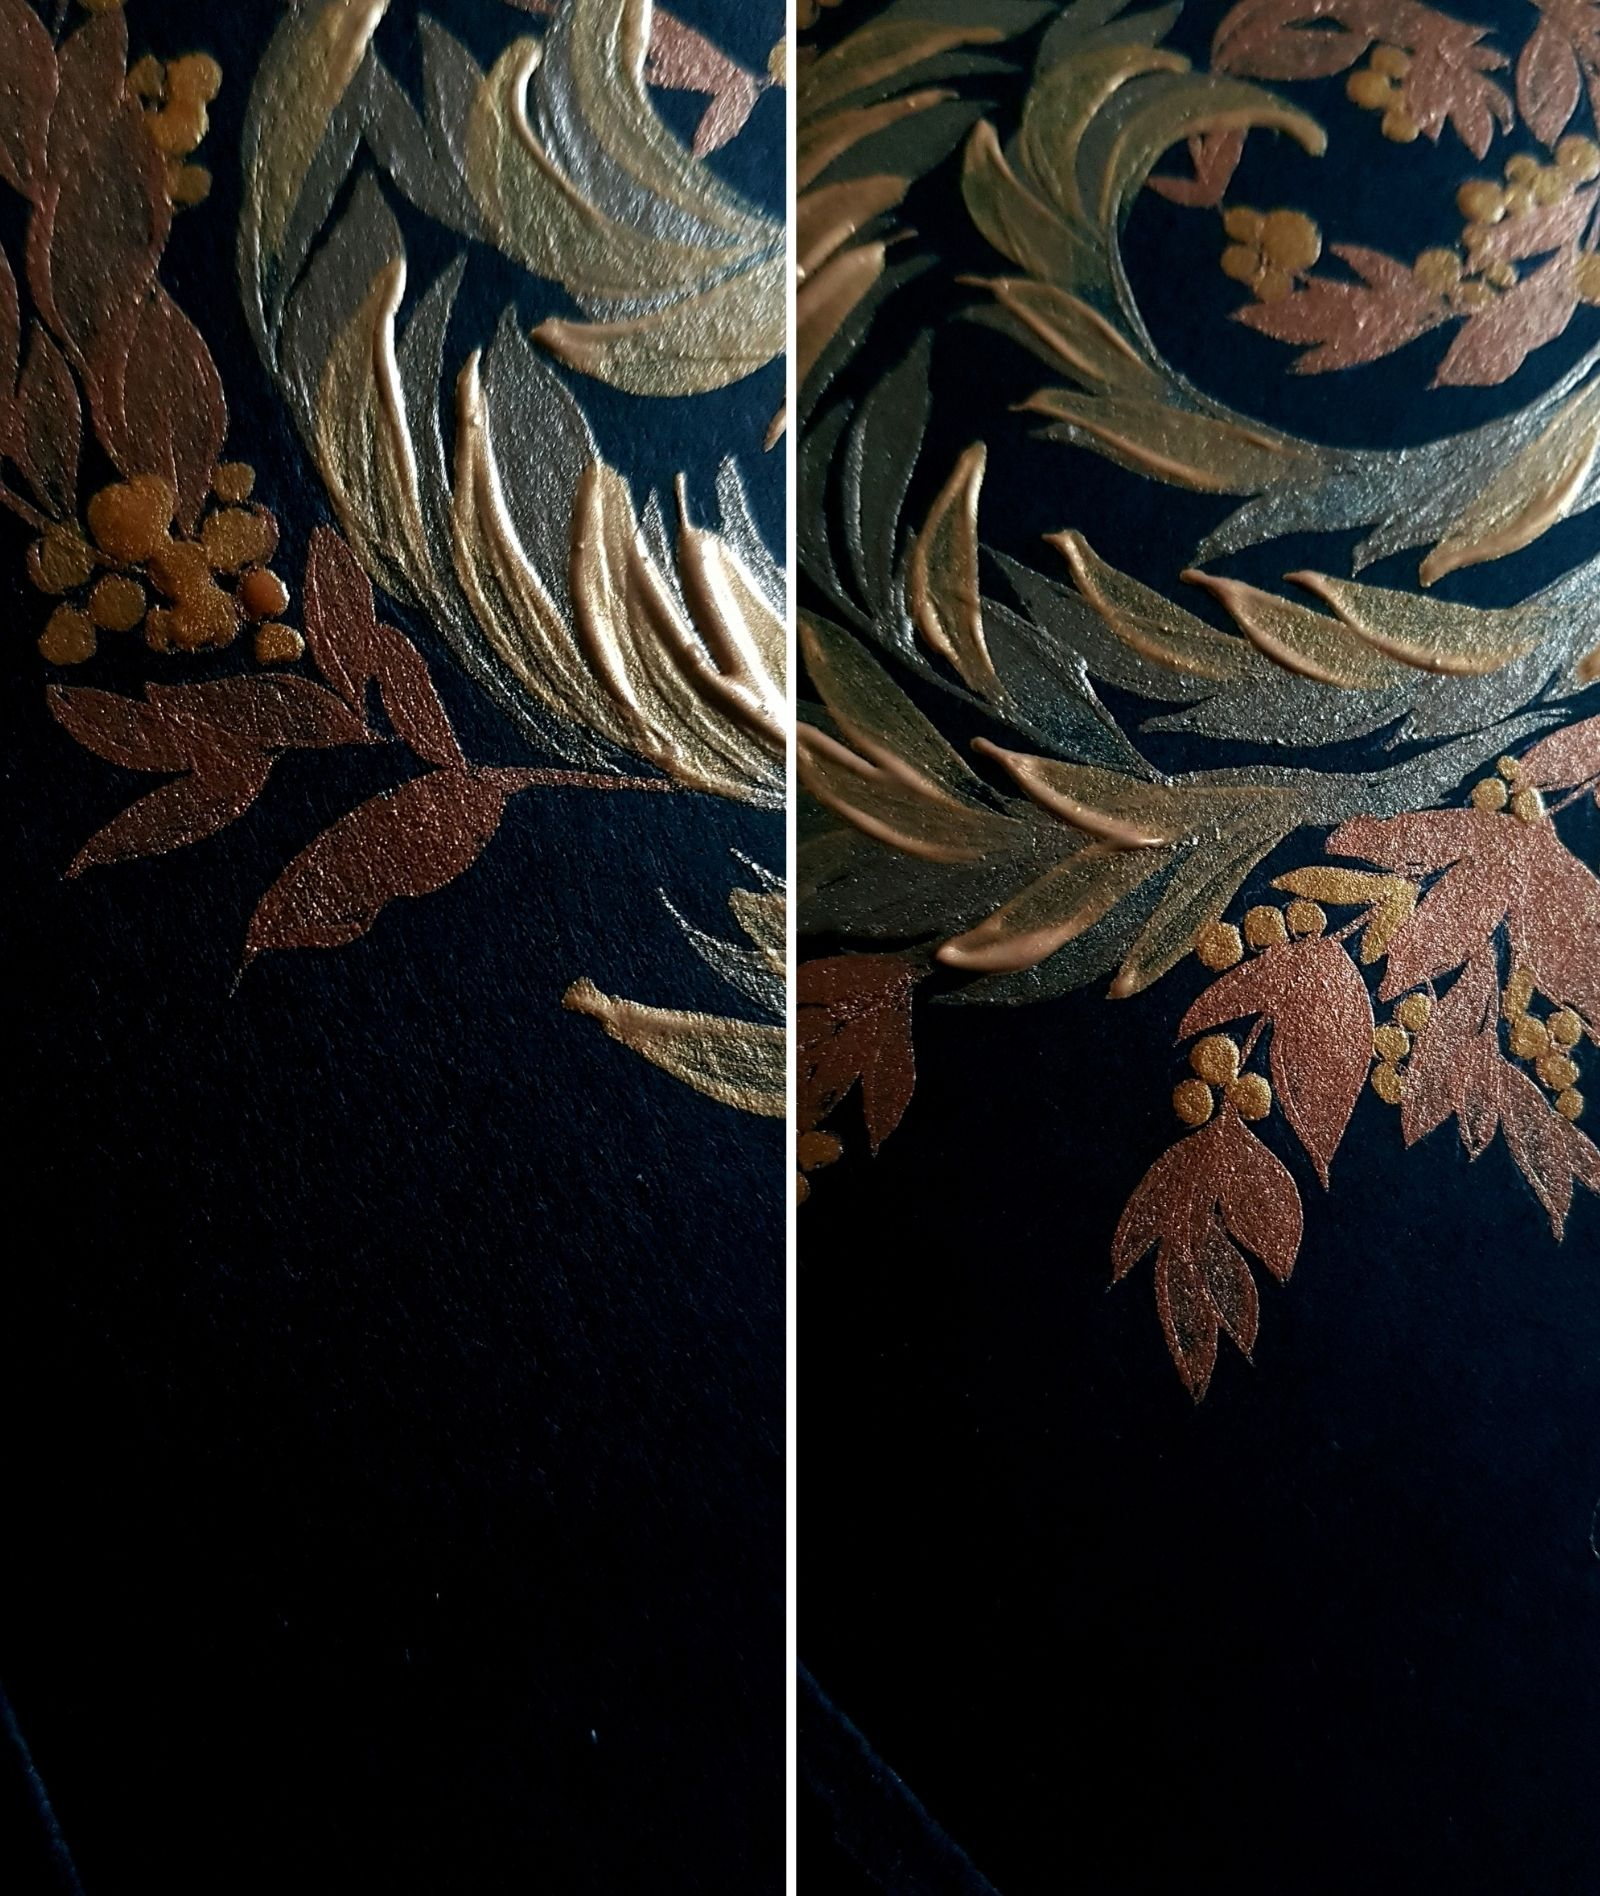 Black, gold and copper hand painted wedding invitations for a luxury renaissance wedding at Villa Balbiano, Lake Como, Italy